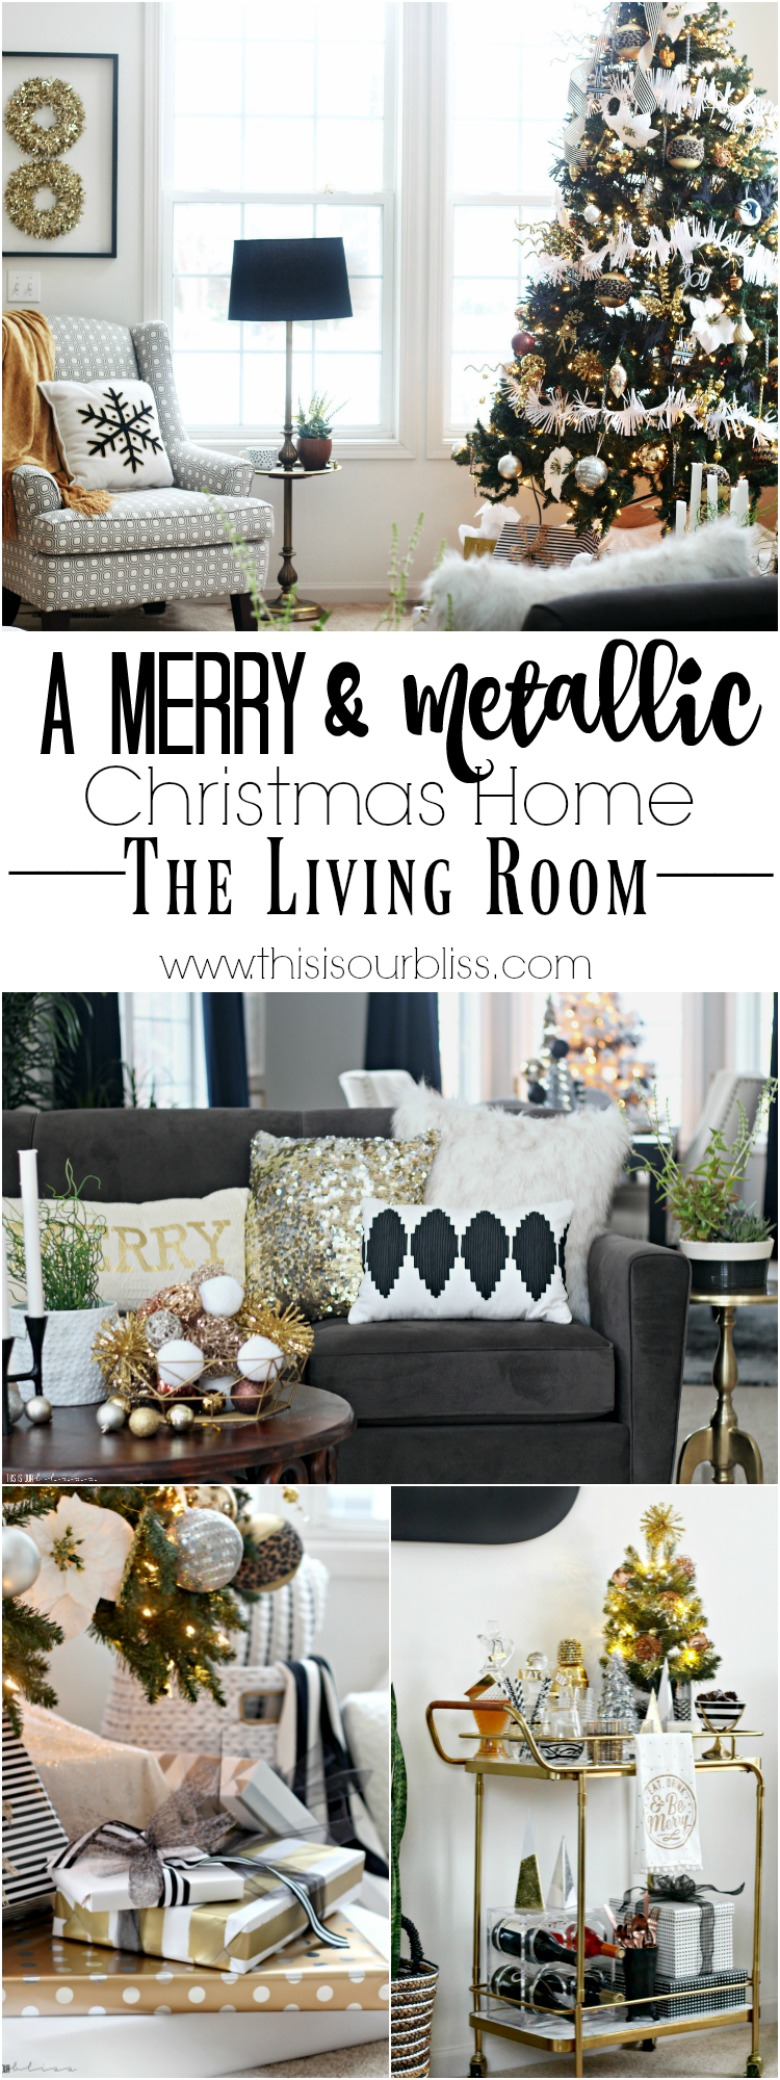 A Merry & Metallic Christmas Home The Living Room | 12 Days of Holiday Homes Tour 2016 | This is our Bliss | www.thisiosurbliss.com